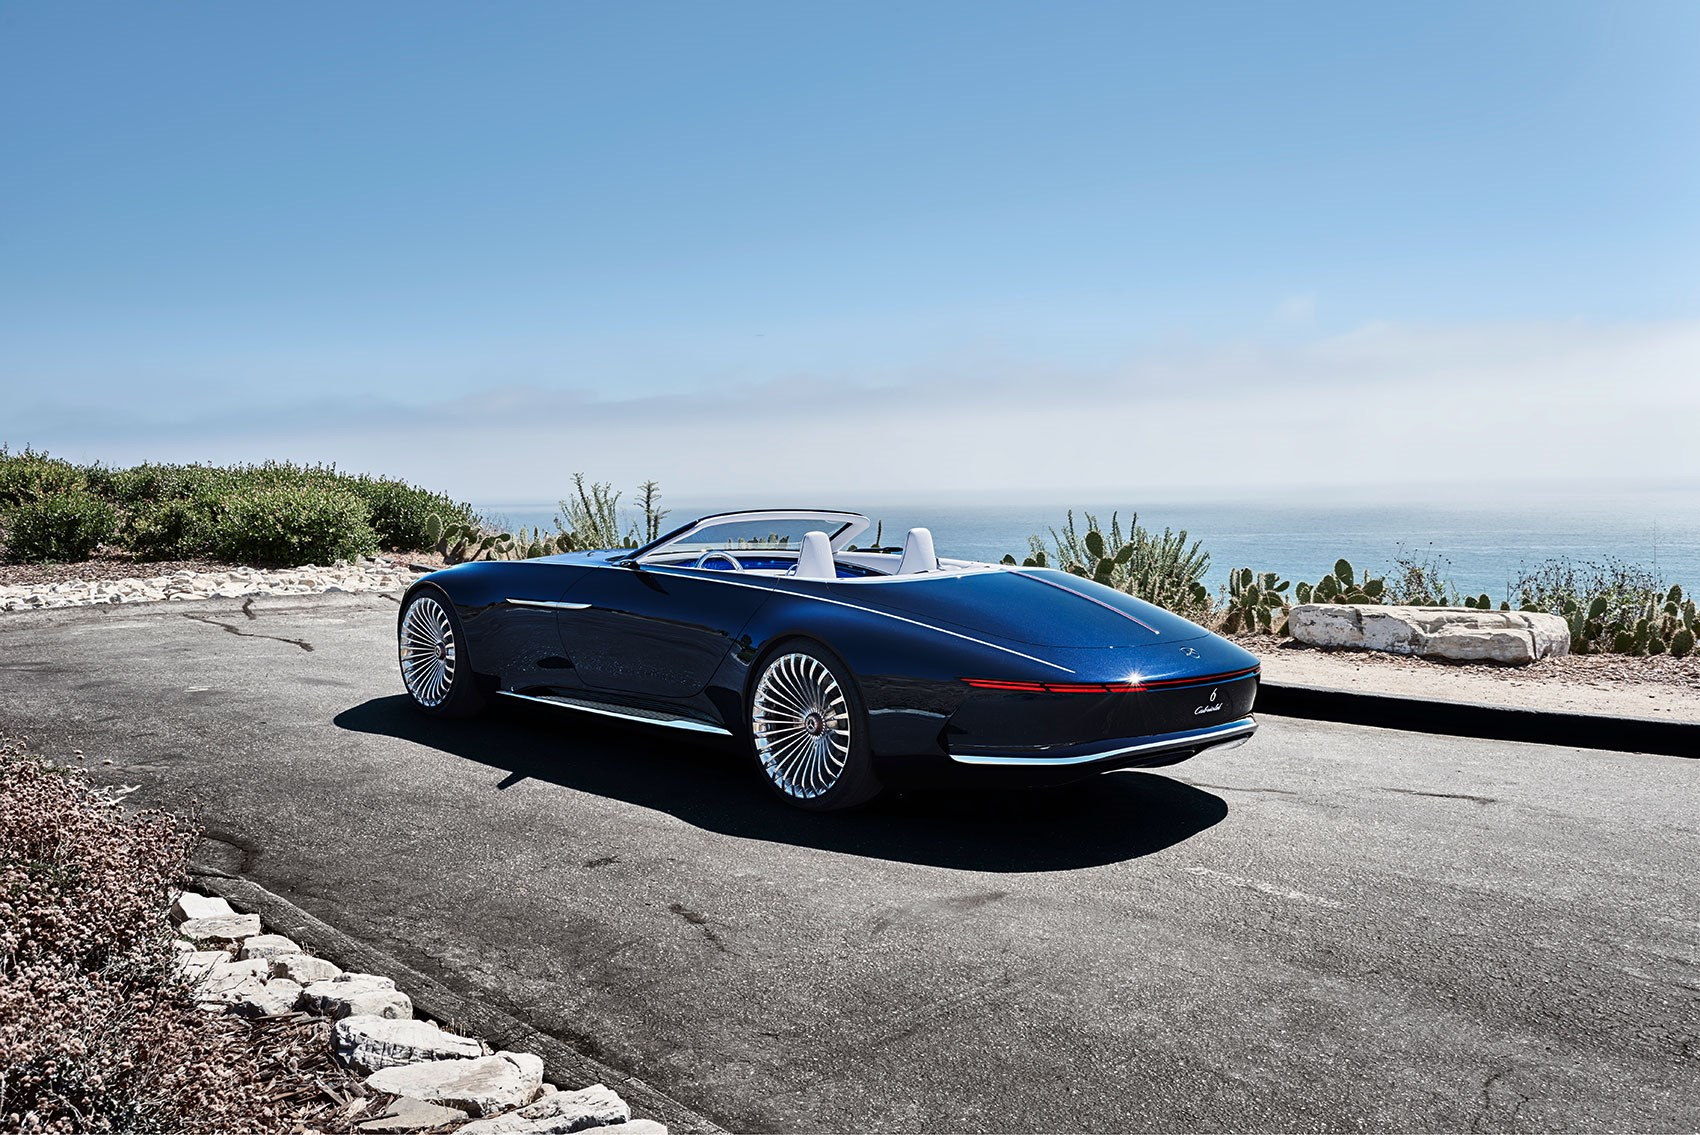 It S A Gargantuan Roadster With Real Presence The Vision Mercedes Maybach 6 Cabriolet